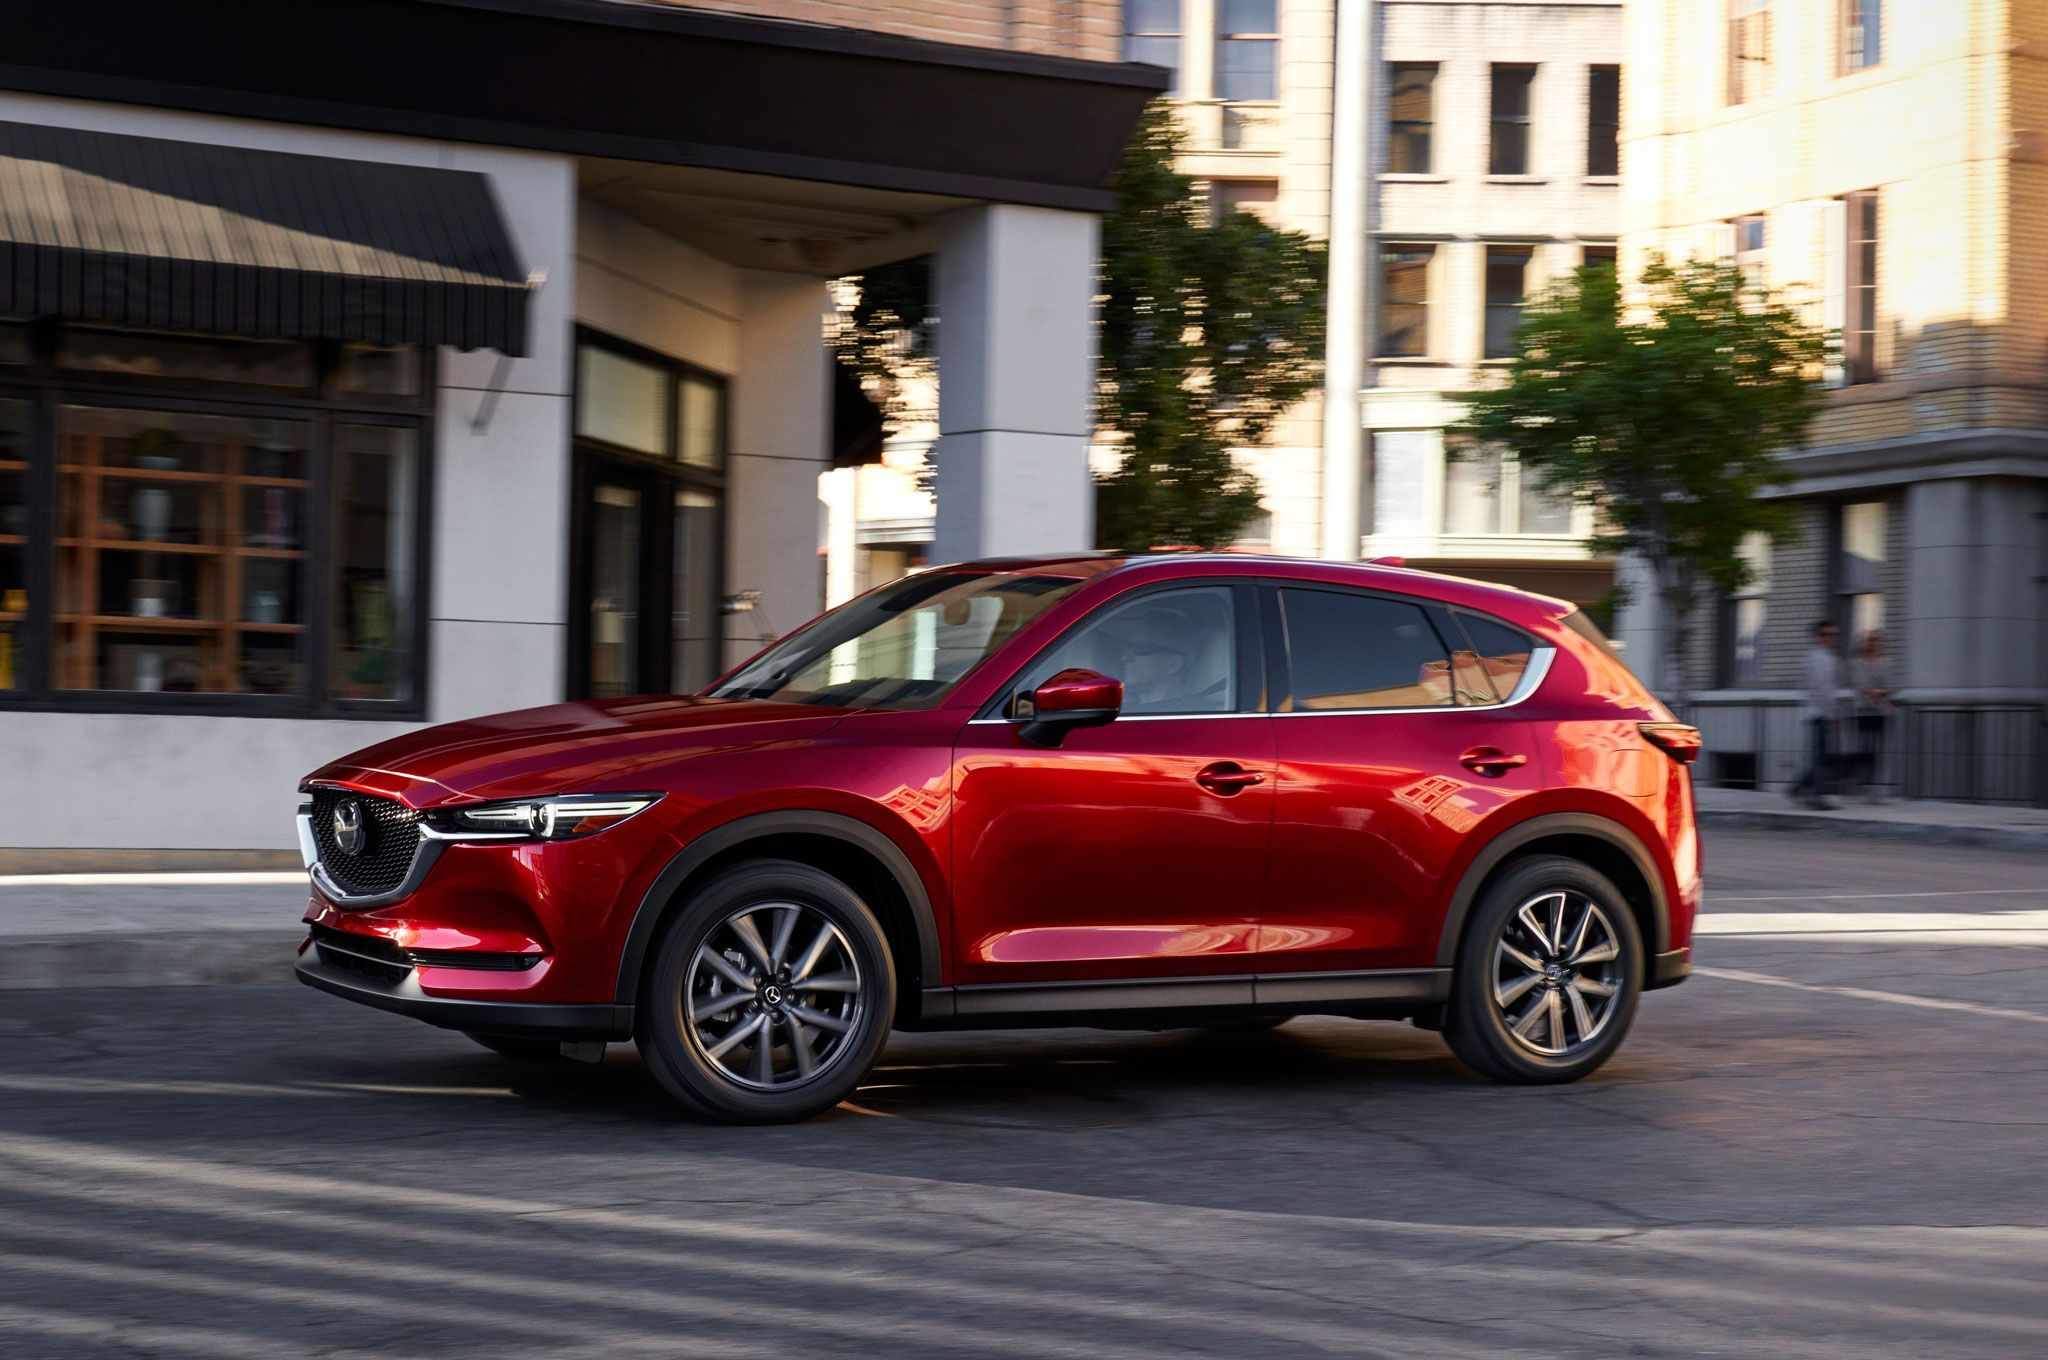 2017 mazda cx 5 test drive and review specifications fuel economy pricing